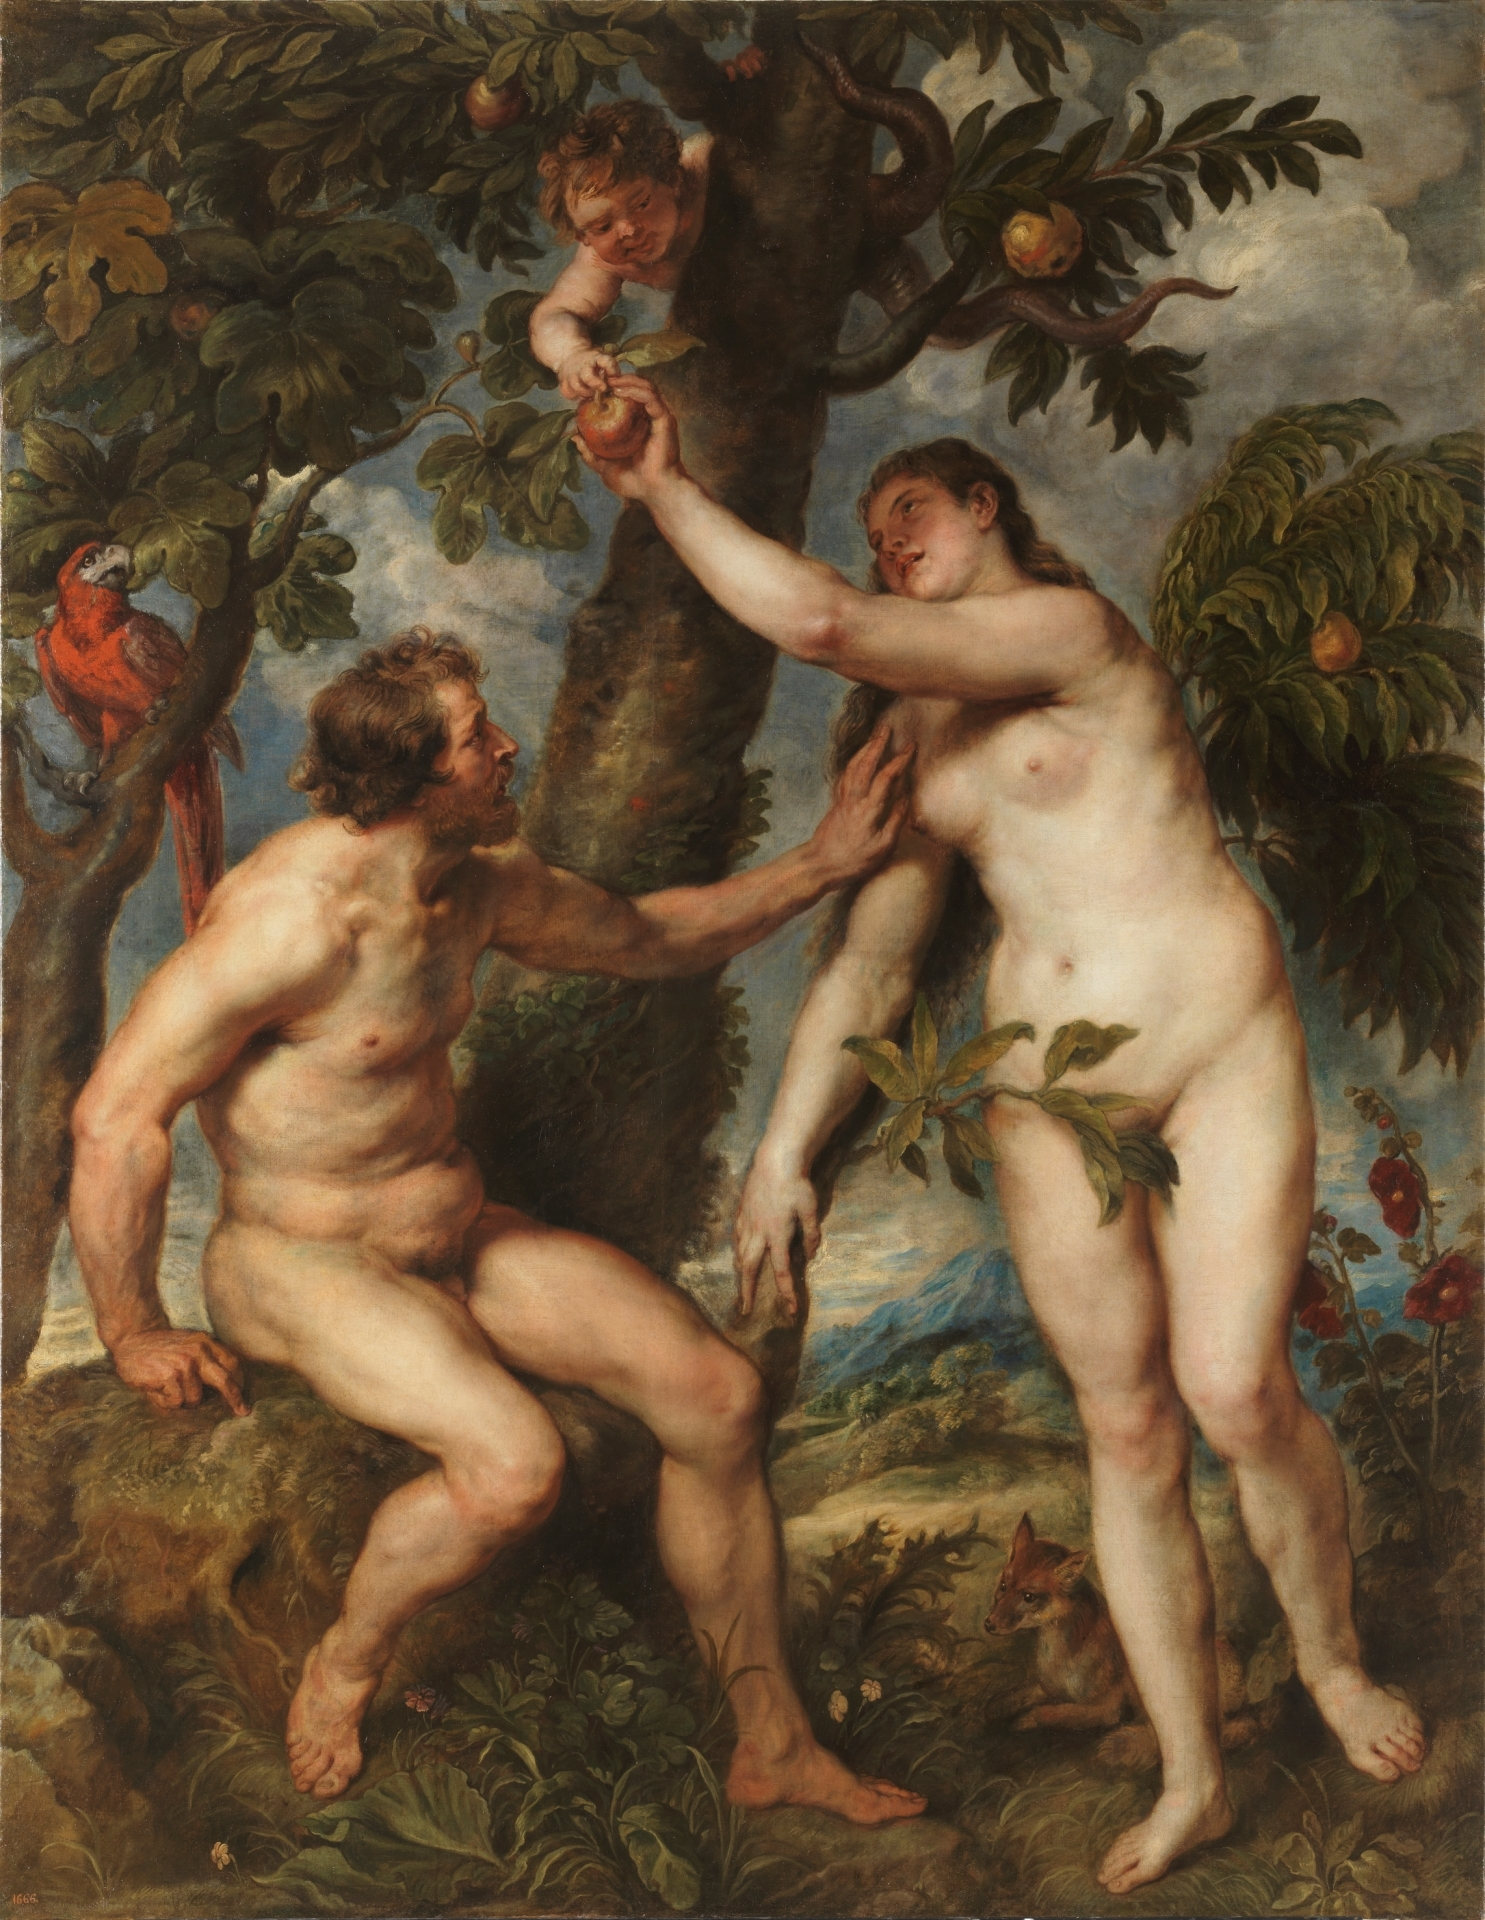 https://i0.wp.com/upload.wikimedia.org/wikipedia/commons/6/61/Peter_Paul_Rubens_004.jpg